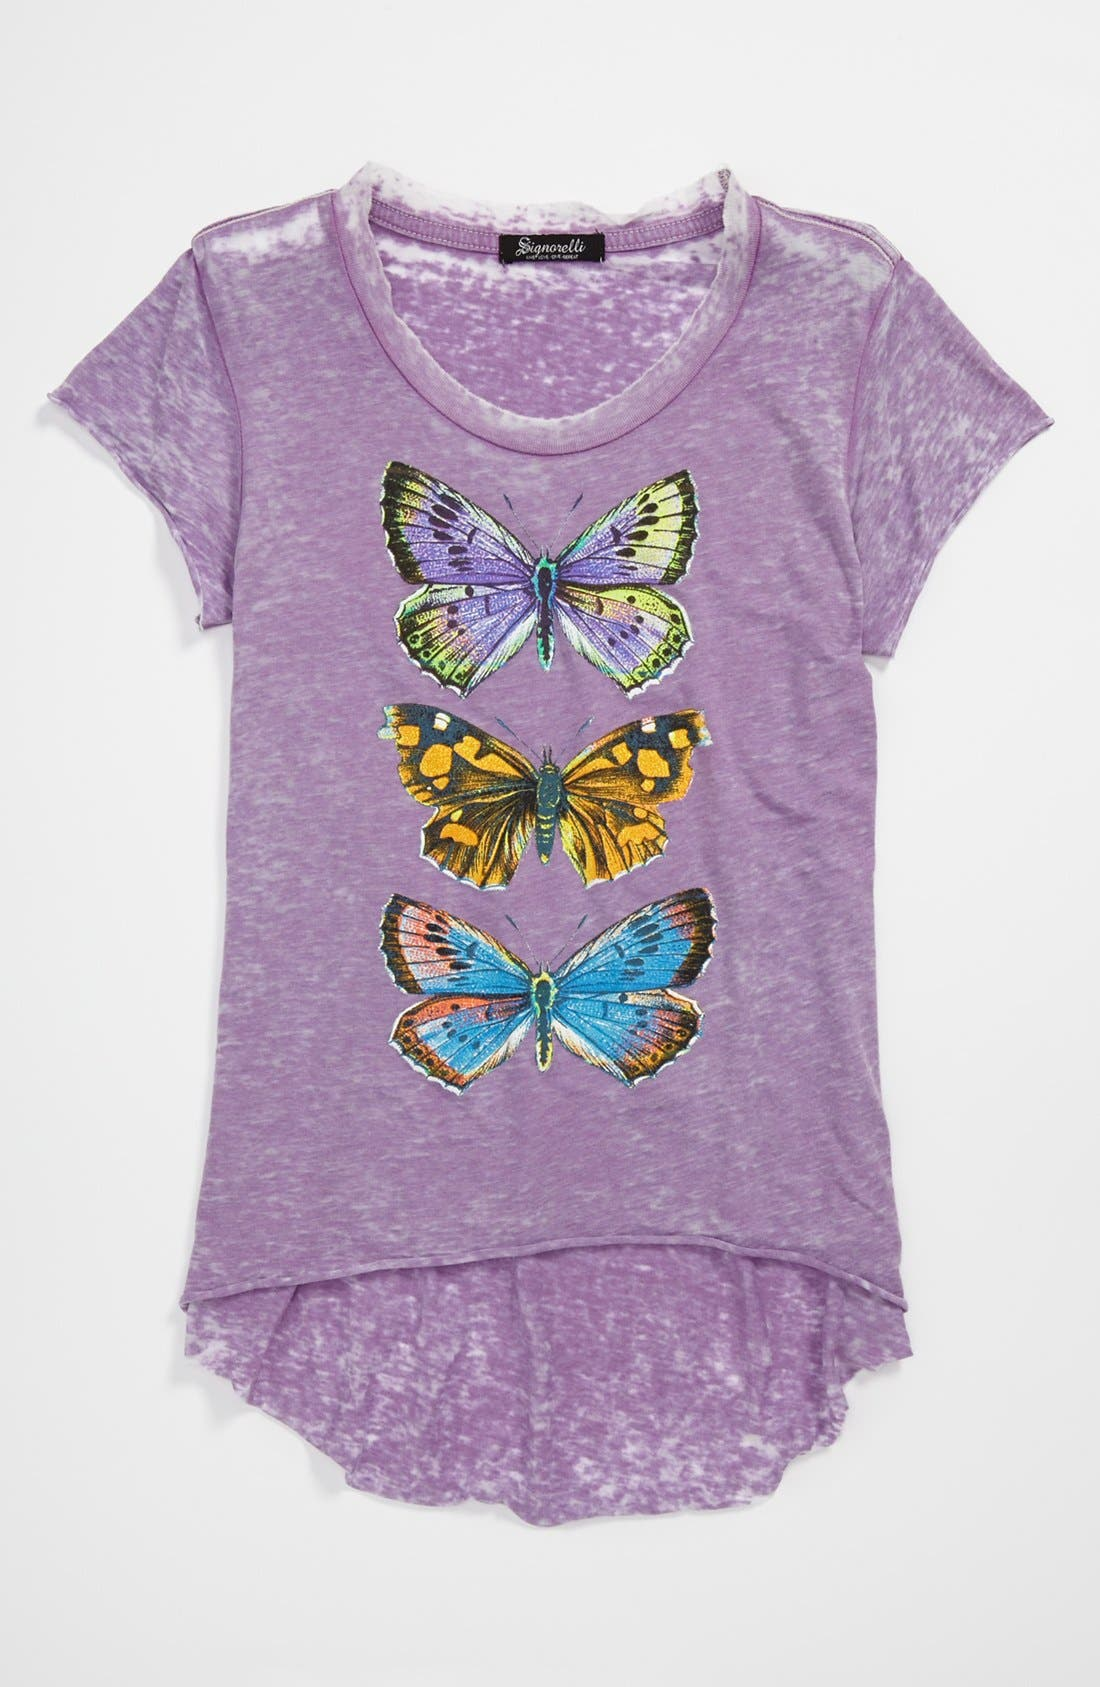 Alternate Image 1 Selected - Signorelli Butterfly Print Tee (Big Girls)